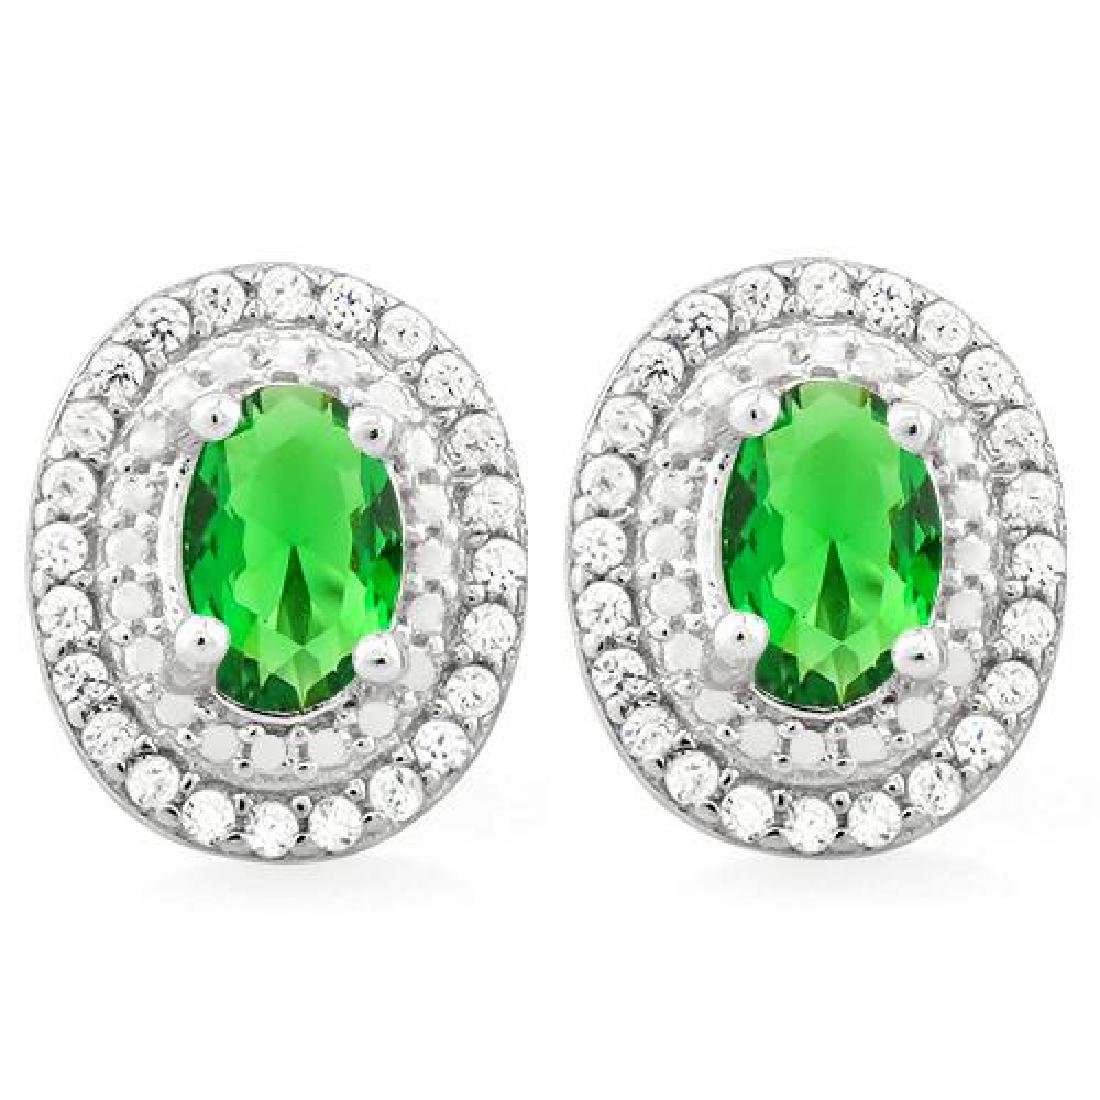 ELEGANT OVAL 1CT EMERALD QUARTZ CLASSIC EARRINGS